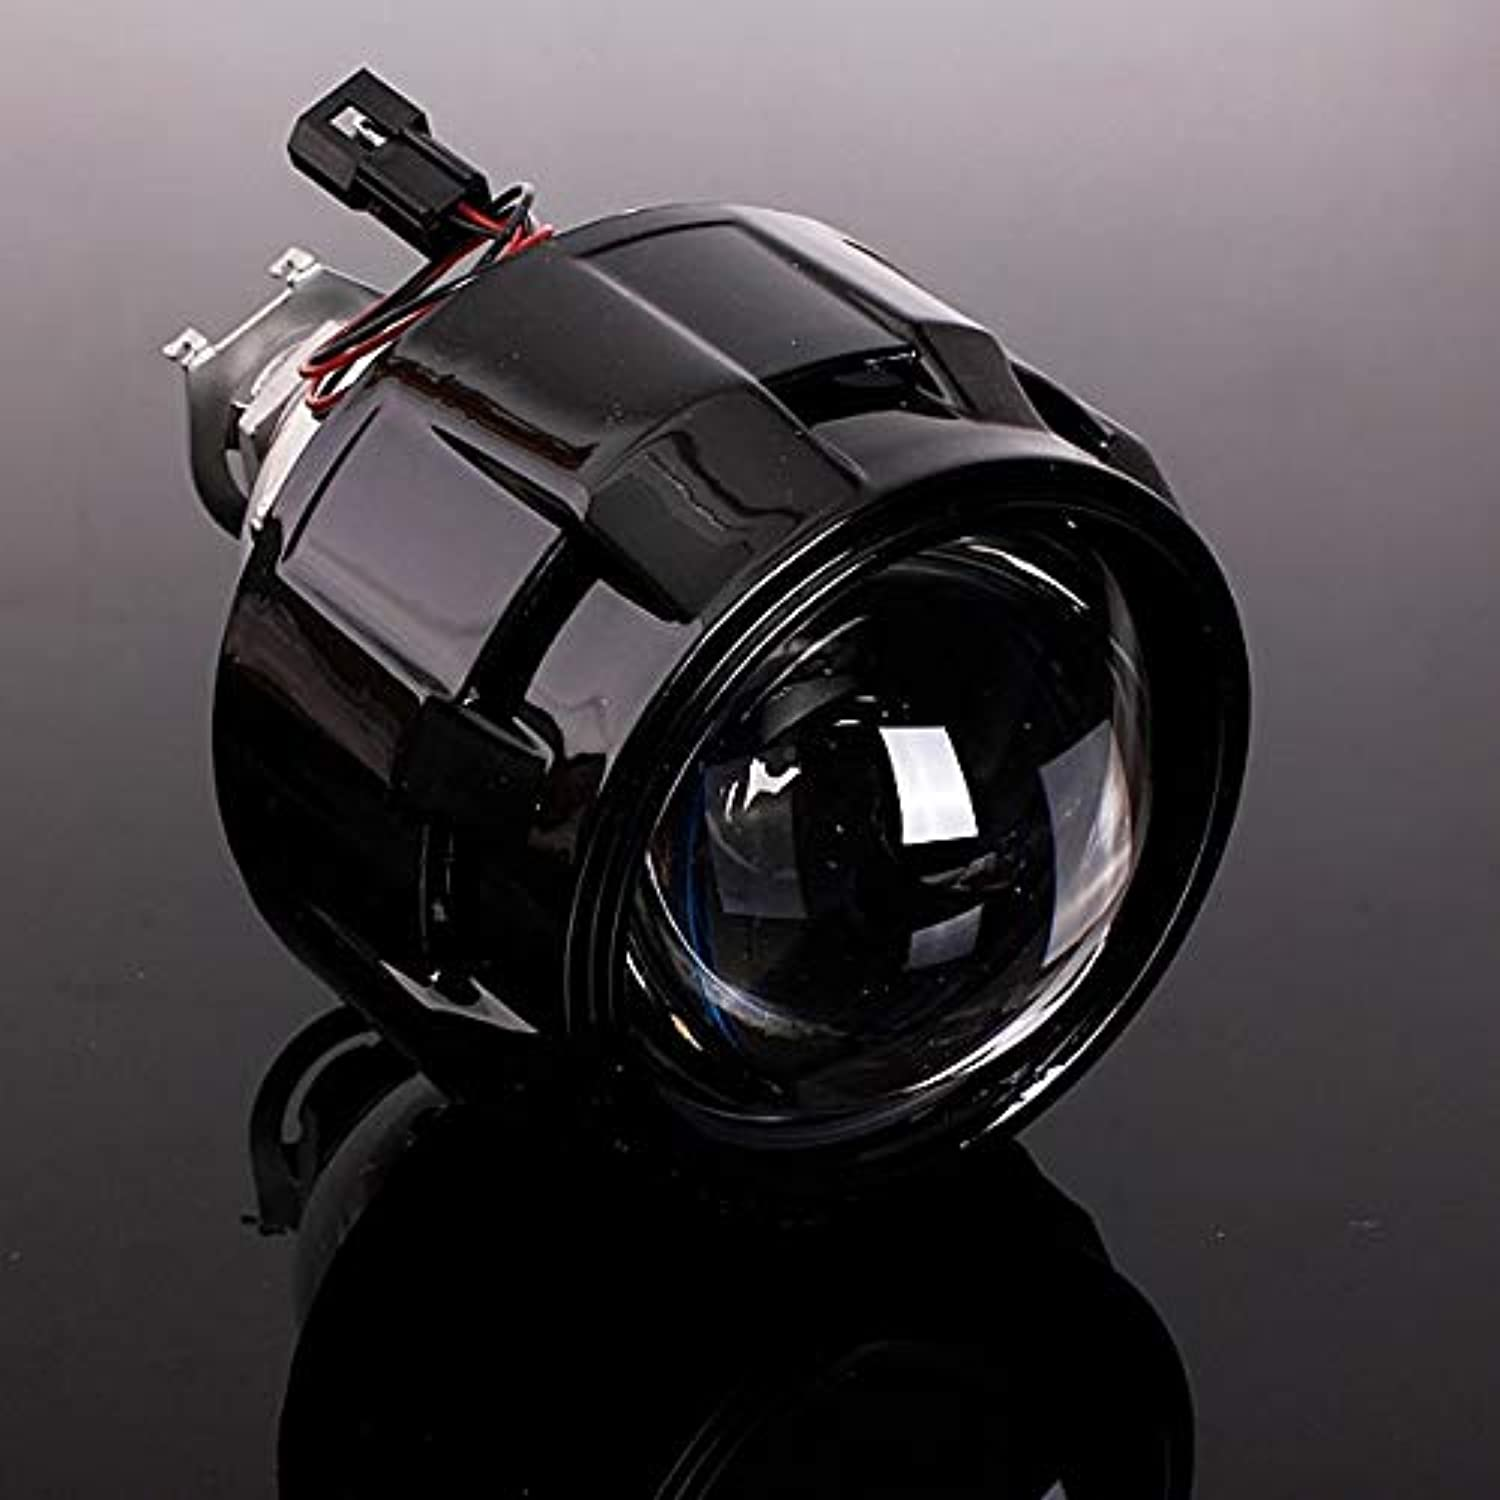 SalaStore  2.5 Inch Mini WST for HID BiXenon Projector Lens + Shrouds LHD RHD for Auto Angels Eye Headlight H1 H4 H7